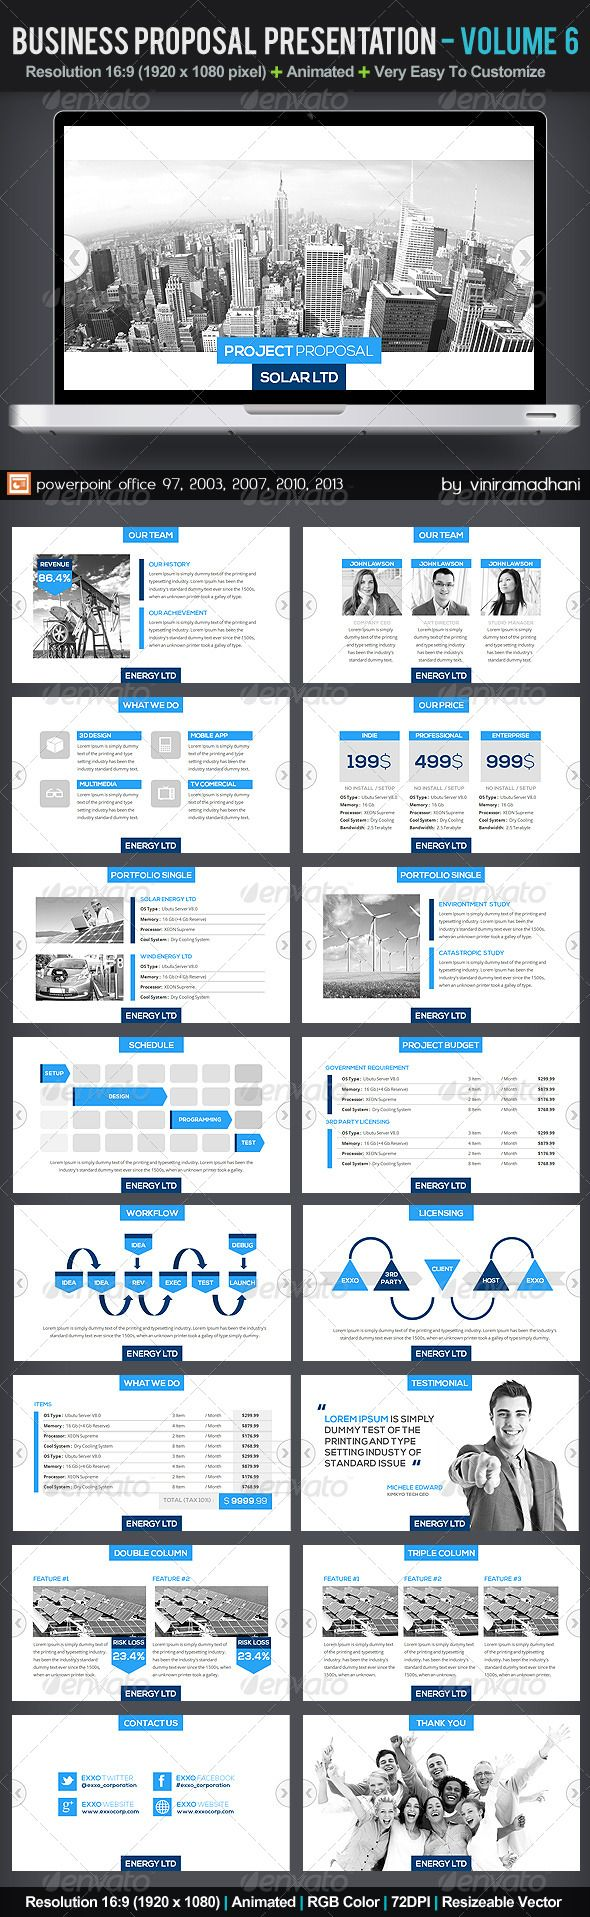 Business Proposal Presentation   Volume 6 #GraphicRiver Specs : All Icon Included microsoft office powerpoint 97, 2003, 2007, 2010, 2013 Format ppt, pptx, ppsx Resolution 16:9 Size 1920×1080 pixel Color RGB Photo not included on download files Fonts : Nexa Free Font: .fontfabric /nexa-free-font/ Open Sans : .google /fonts/specimen/Open+Sans Created: 22October13 PixelDimensions: 1920x1080 PresentationFilesIncluded: PowerpointPPT #PowerpointPPTX #JPGImage Tags: annualreport #business…